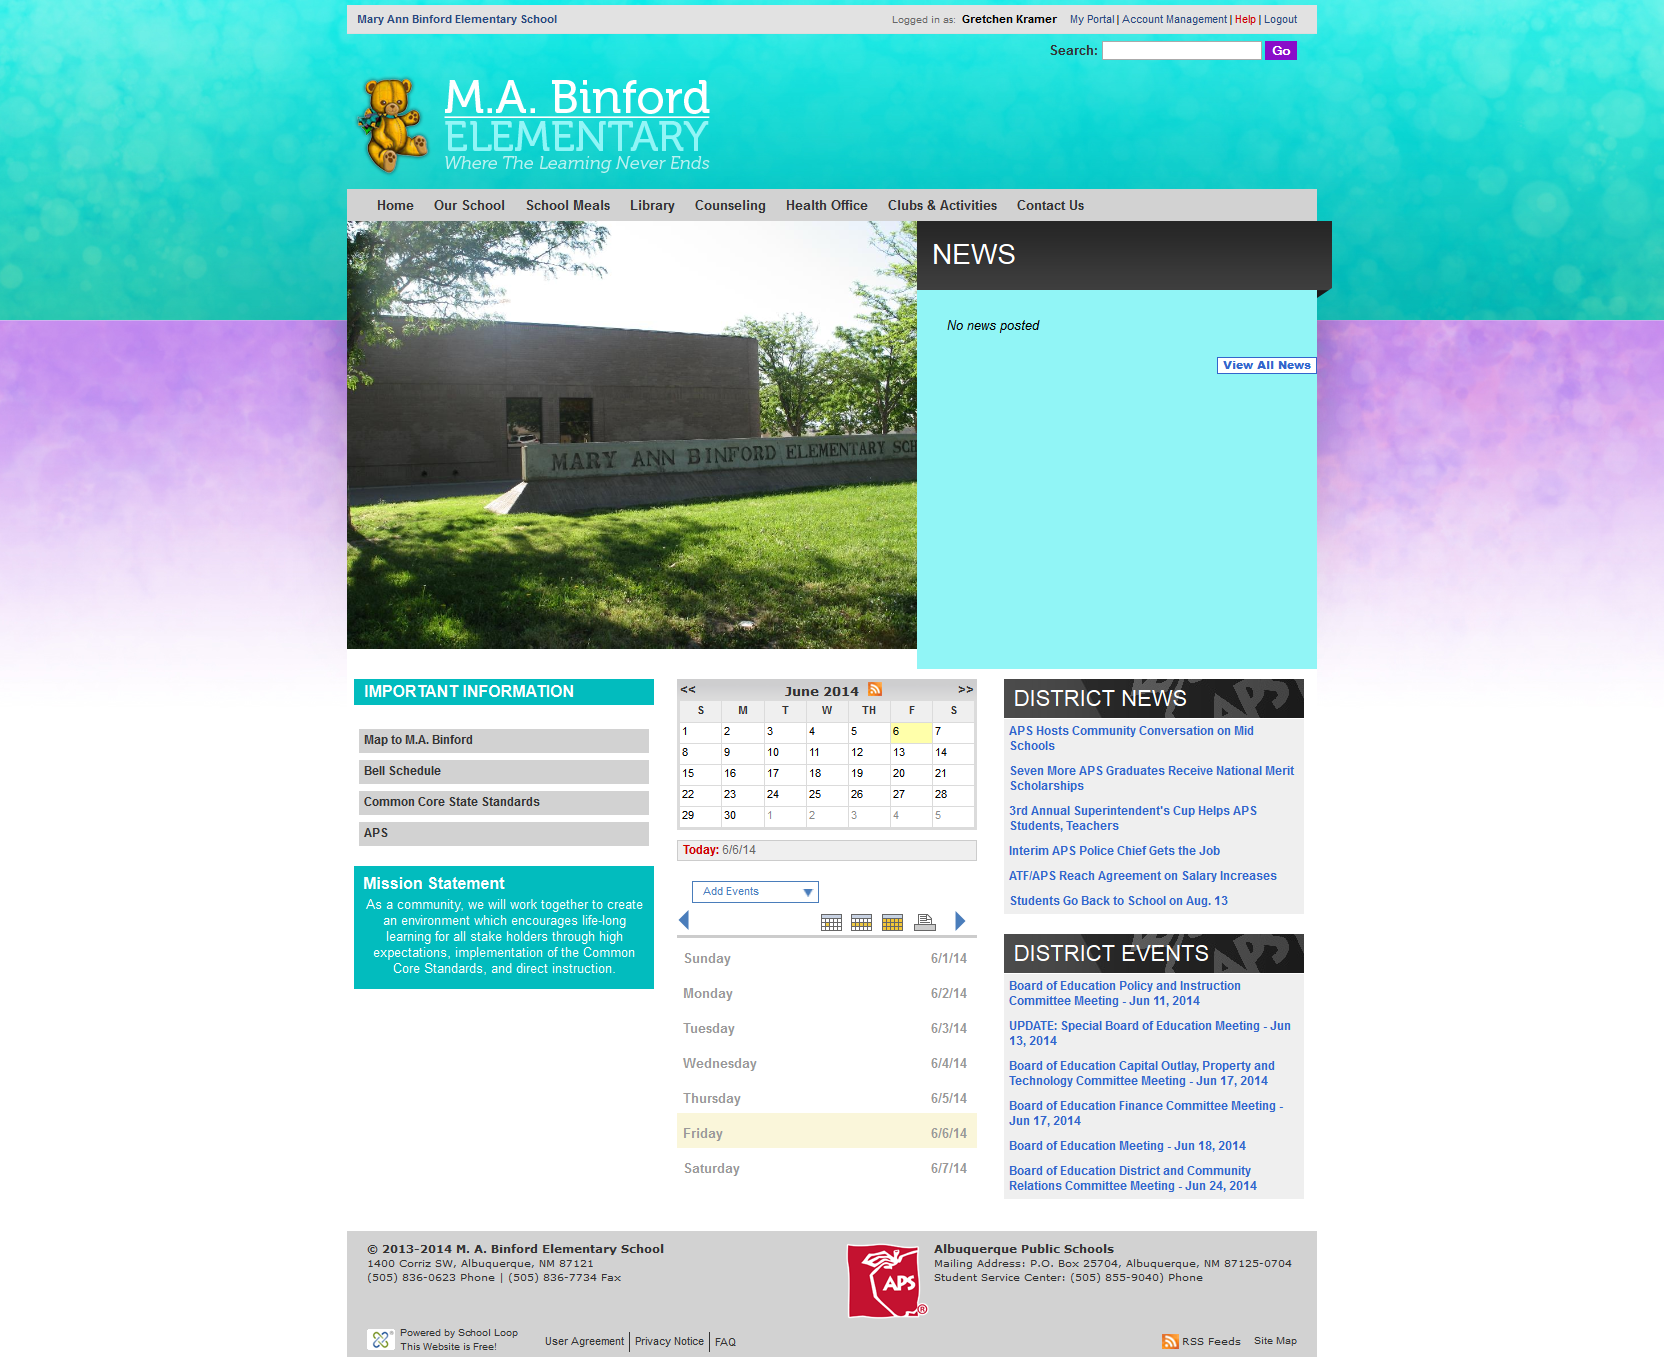 M.A. Binford Website Launched